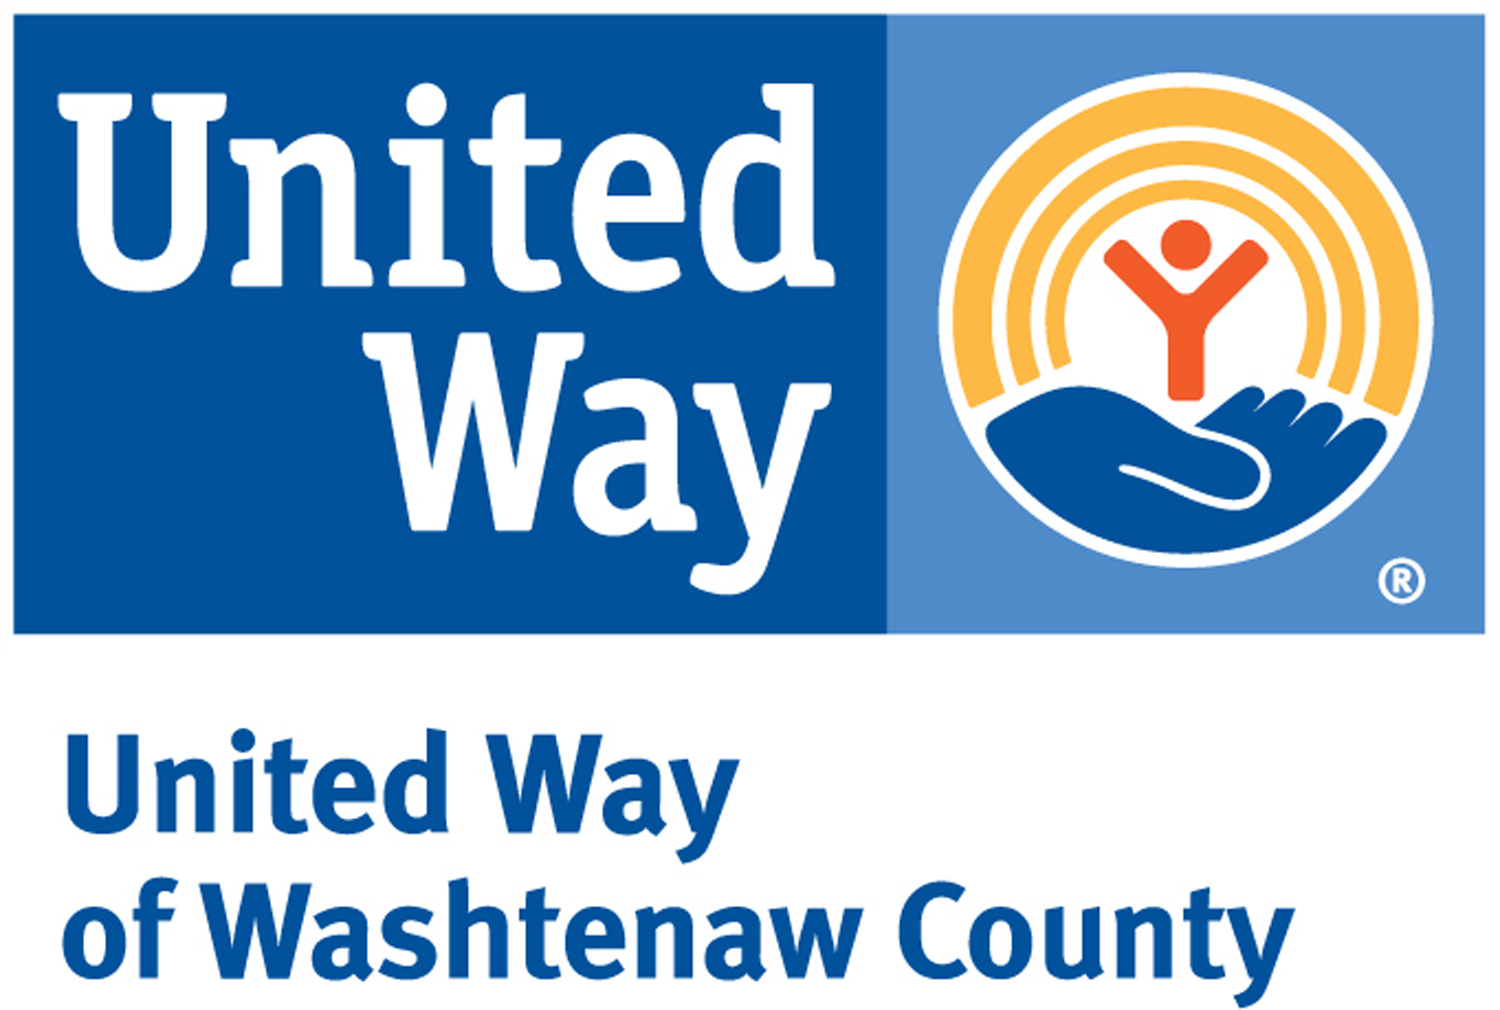 United Way Washtenaw County